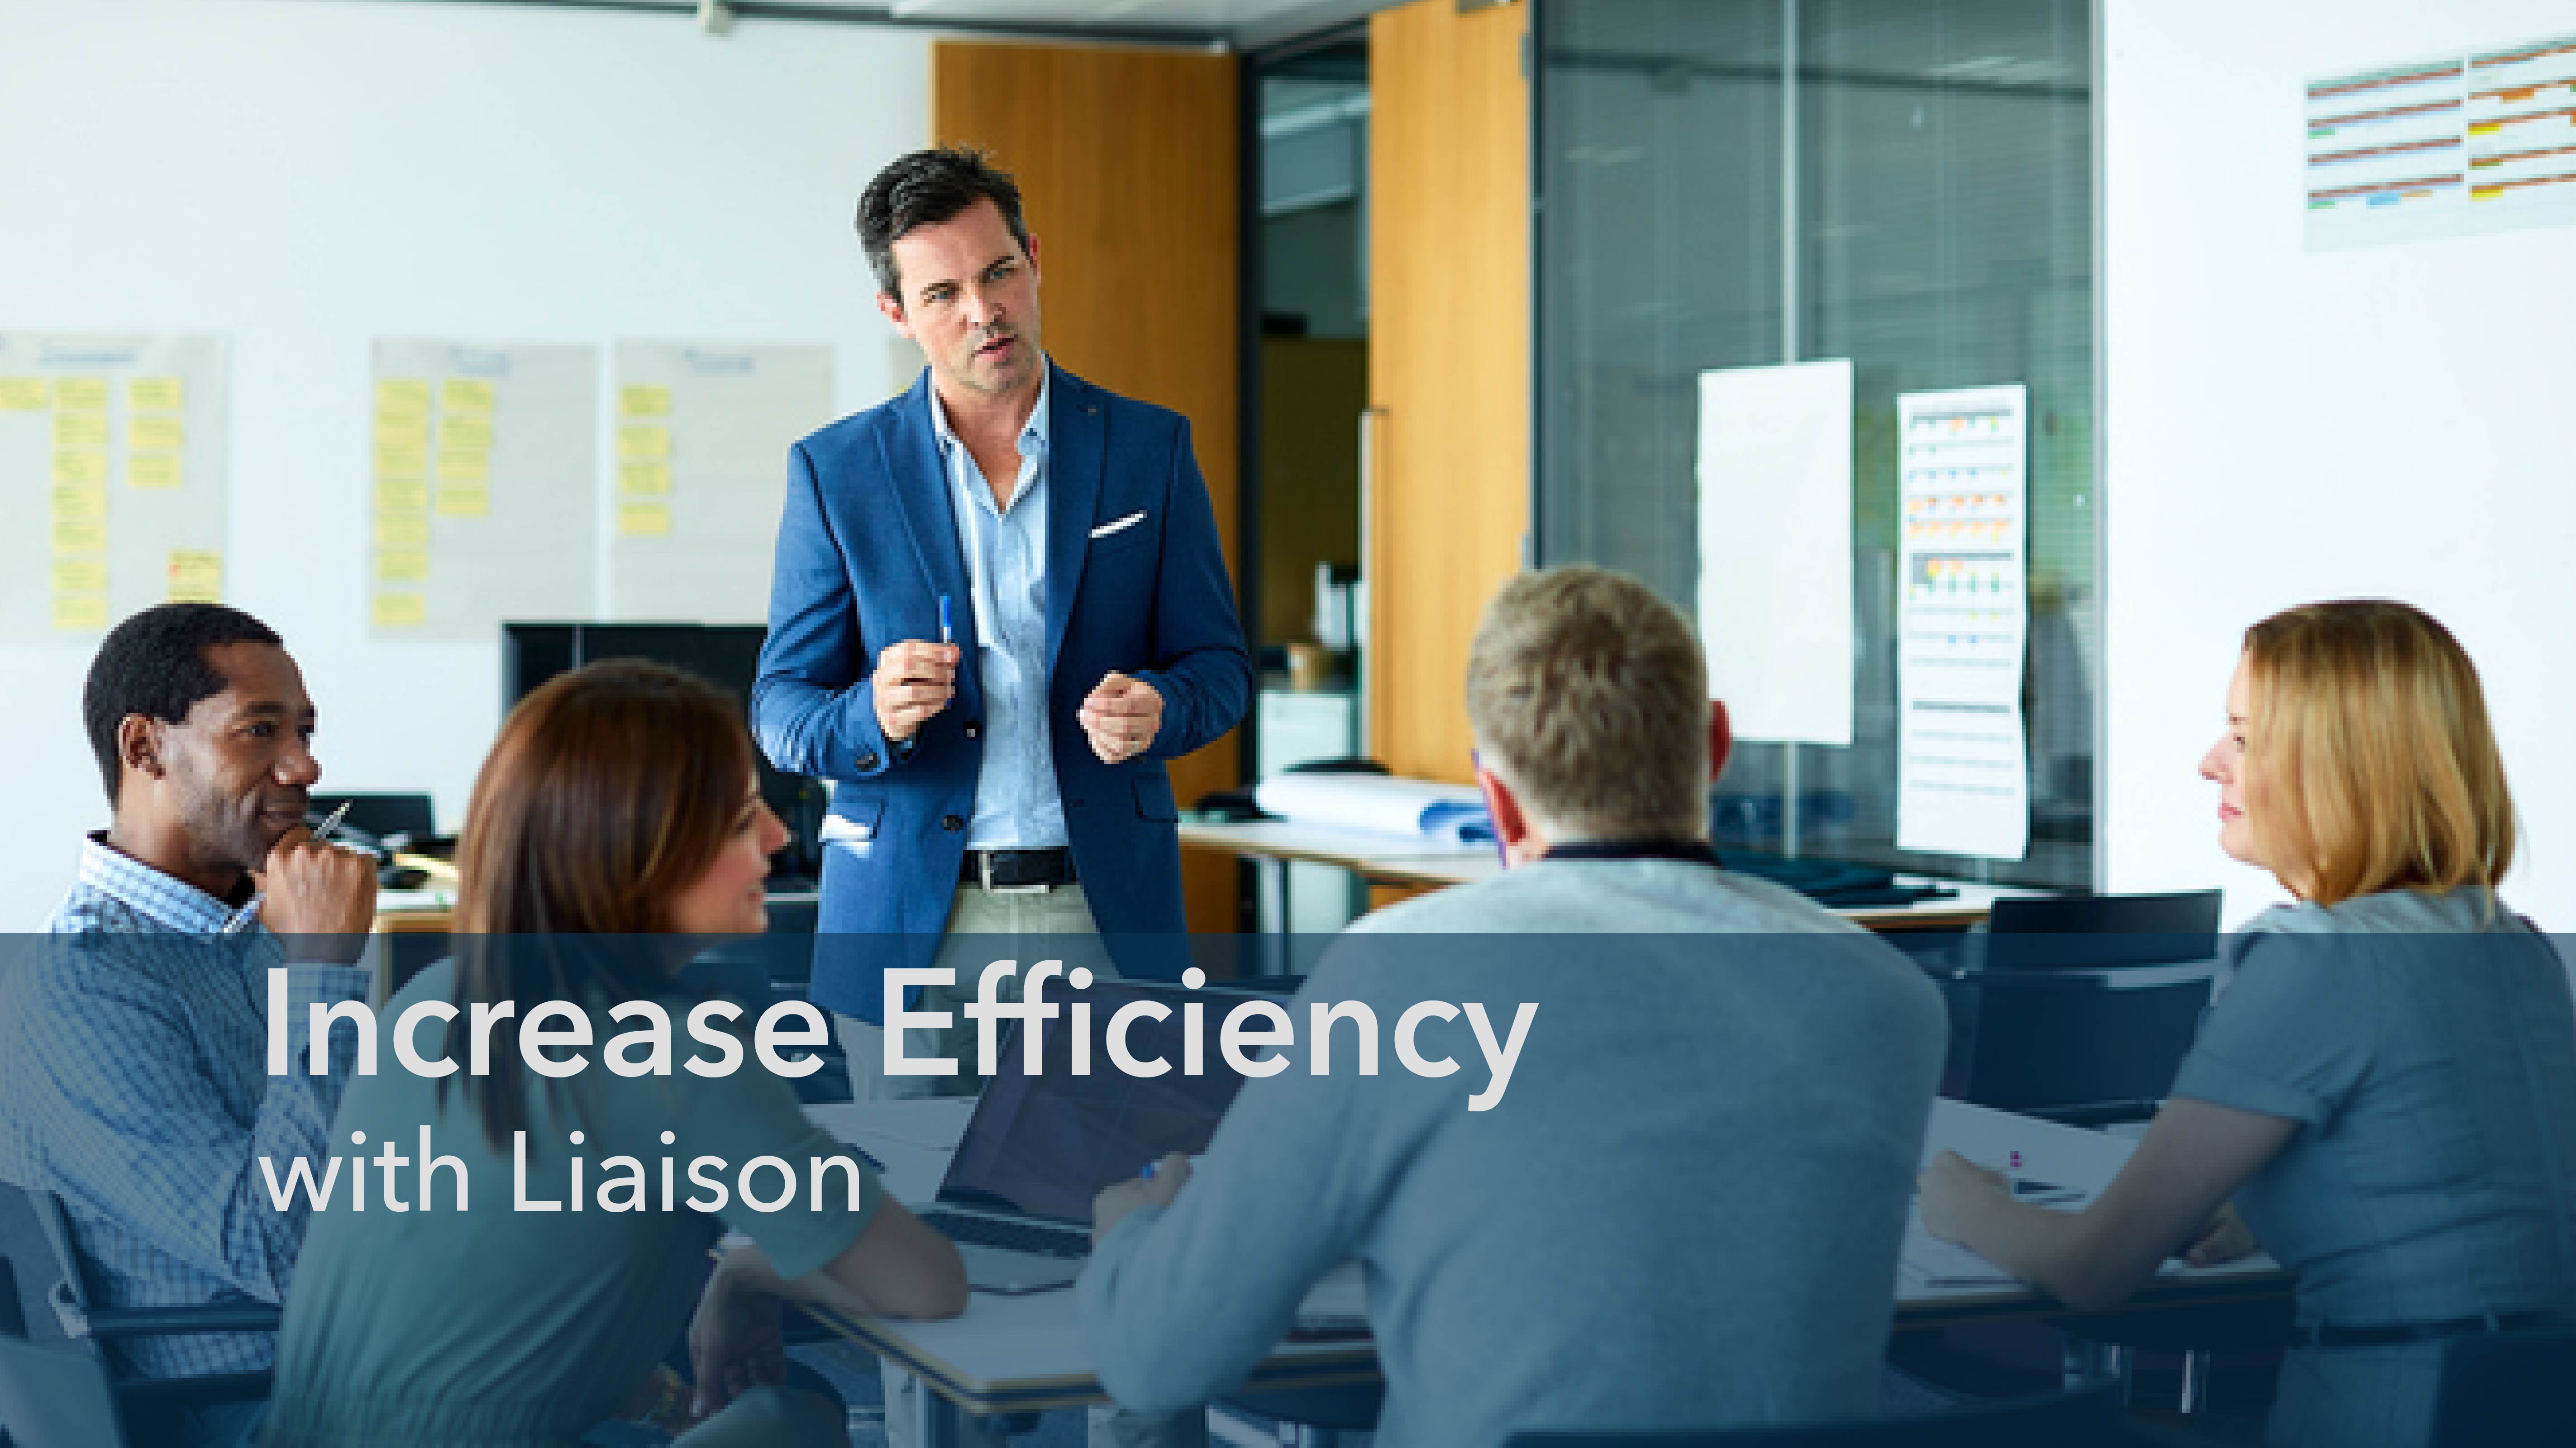 Increase Efficiency with Liaison